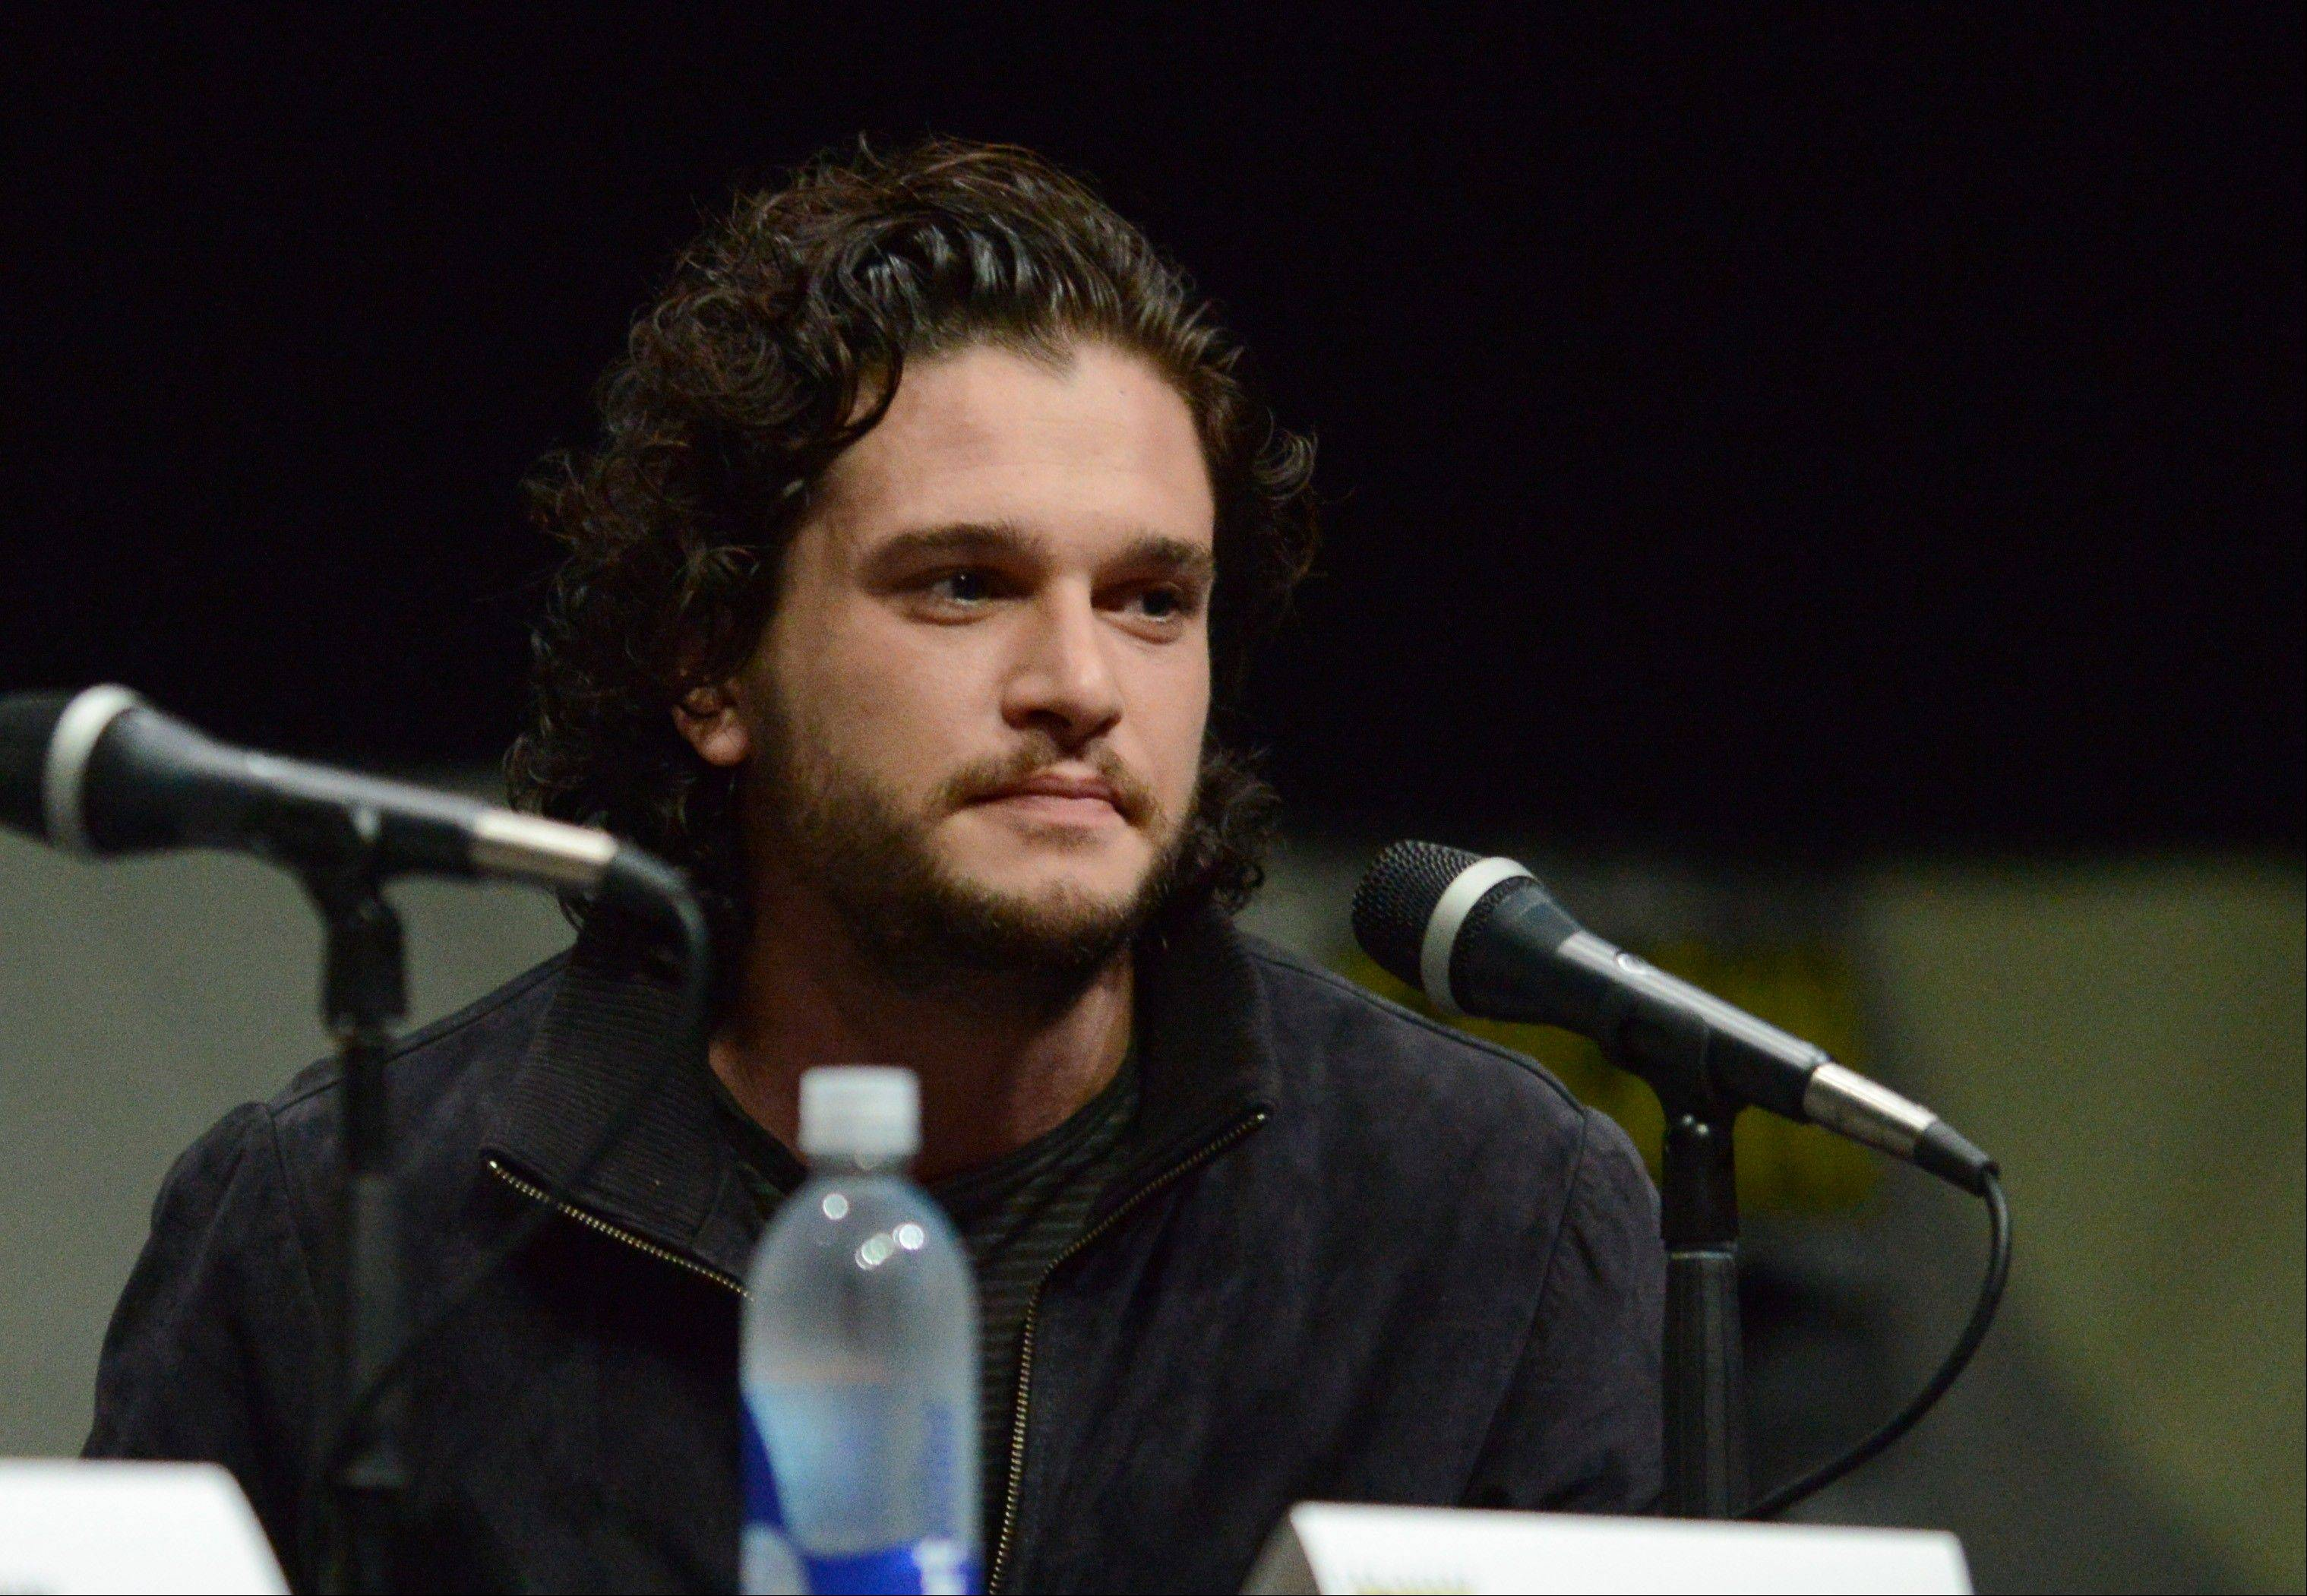 """Game of Thrones"" star Kit Harington attends a panel for his new film, ""Seventh Son,"" Saturday at Comic-Con International in San Diego. The film, based on a novel by Joseph Delaney, opens Jan. 17, 2014, in theaters."